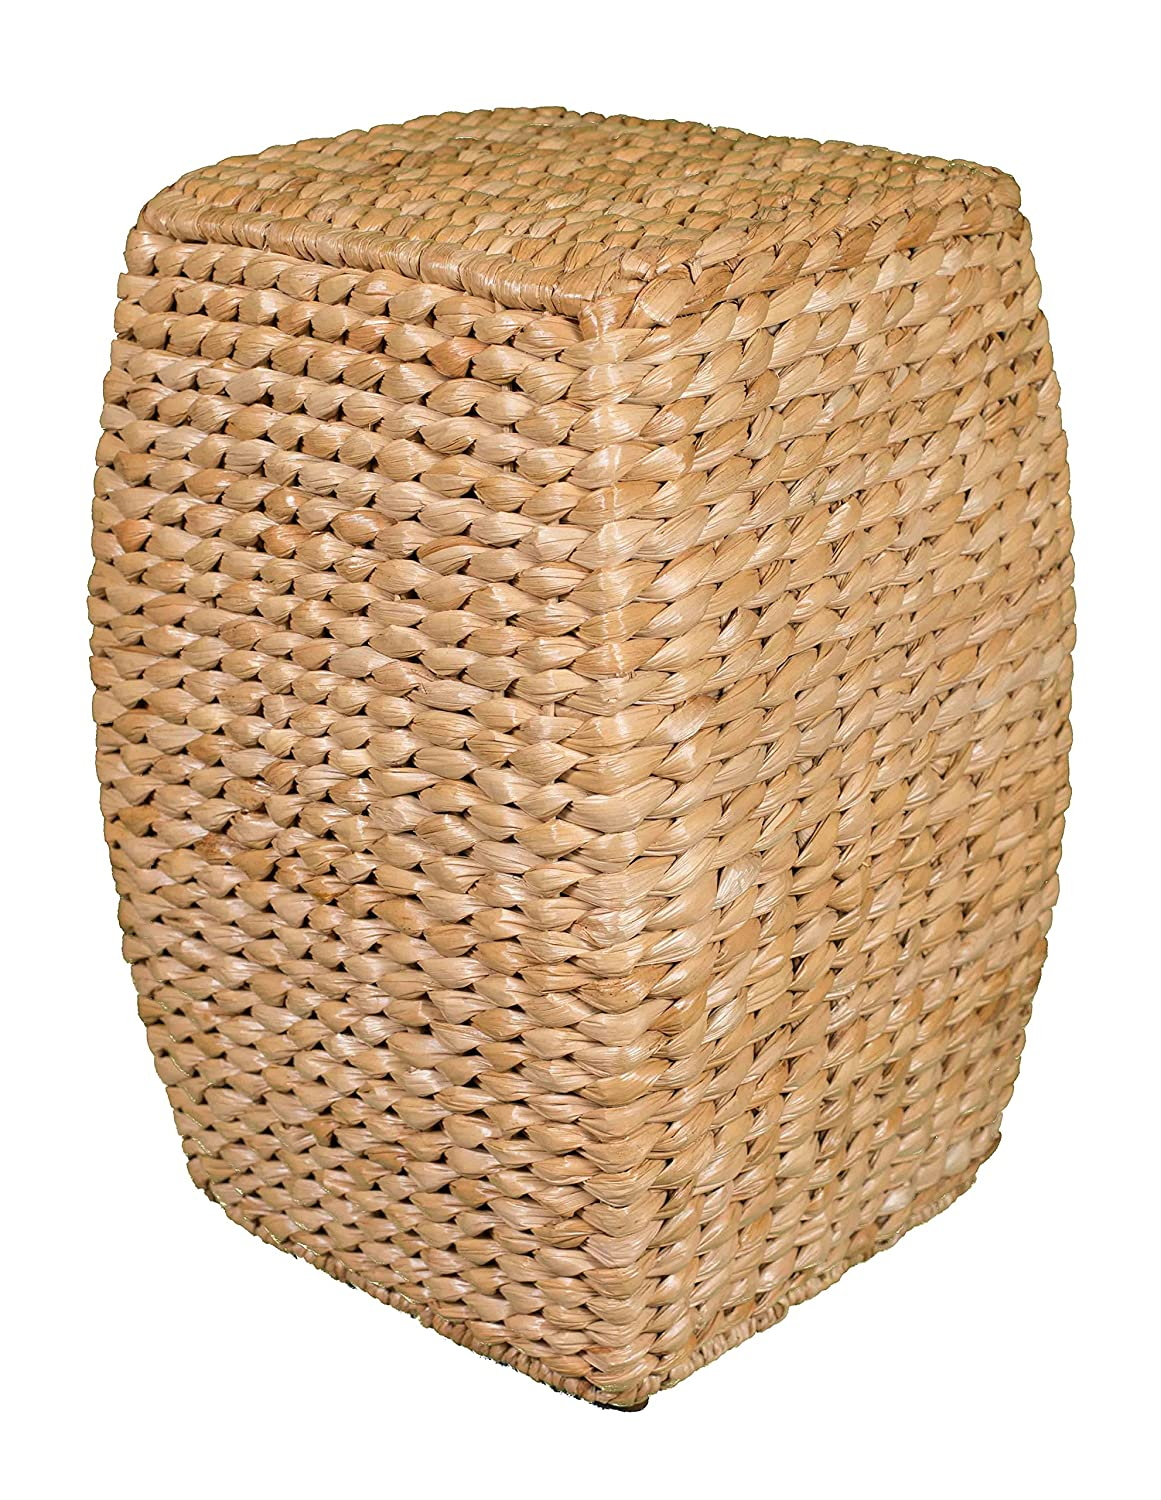 BIRDROCK HOME Seagrass Accent Stool (Natural)   21 inch Stool